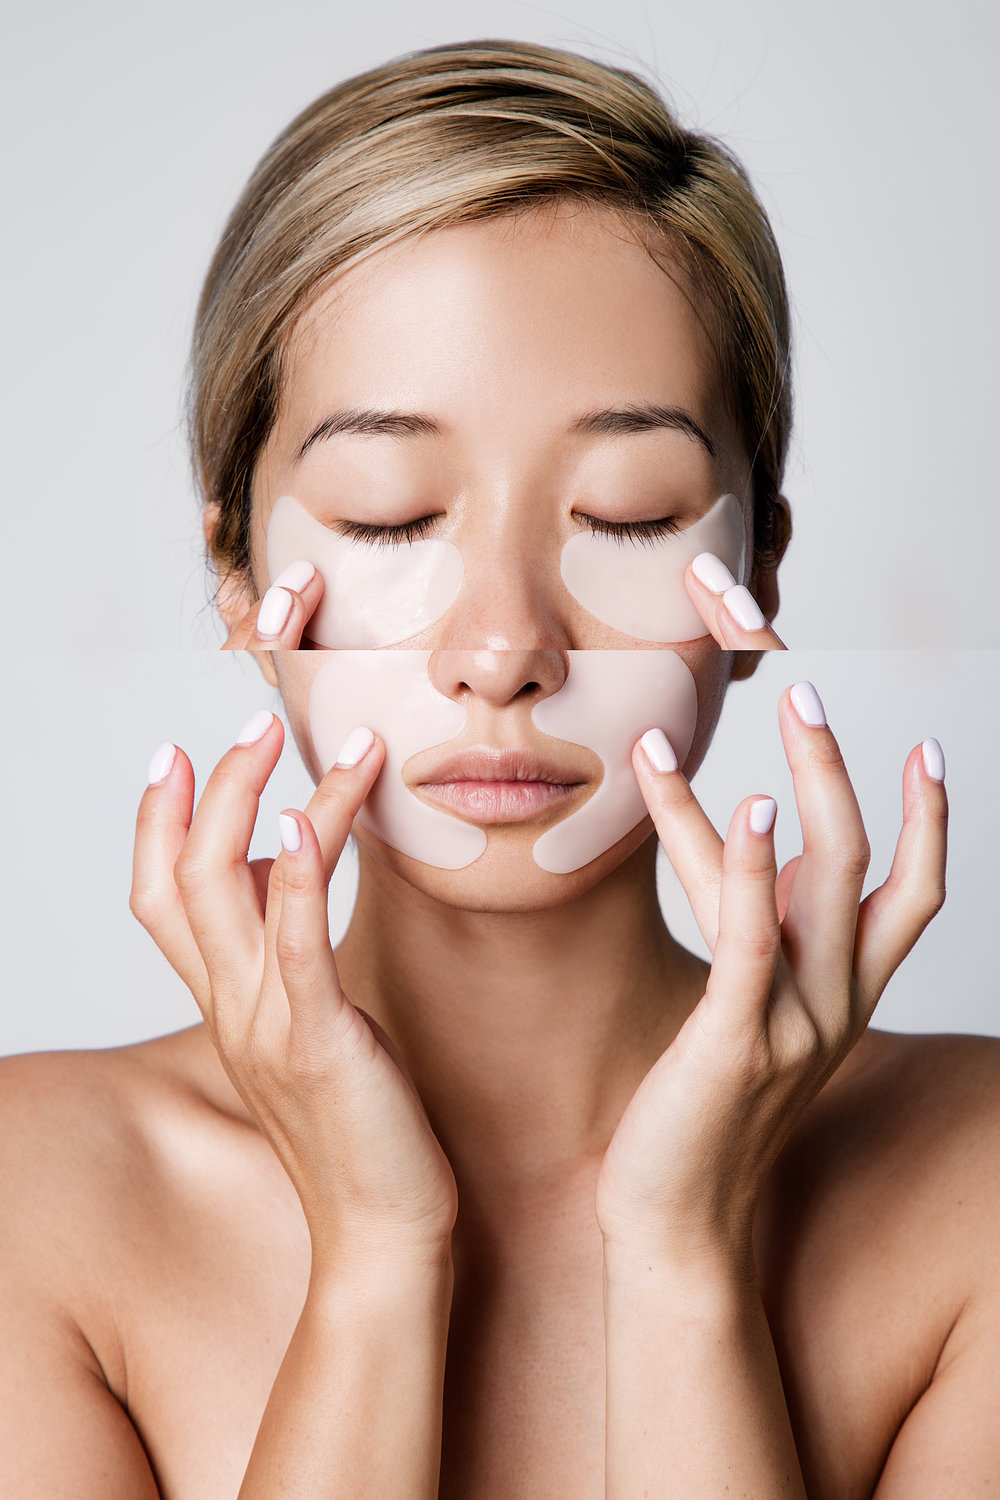 5-korean-face-masks-you-need-to-know-karen-rosalie-11.jpg